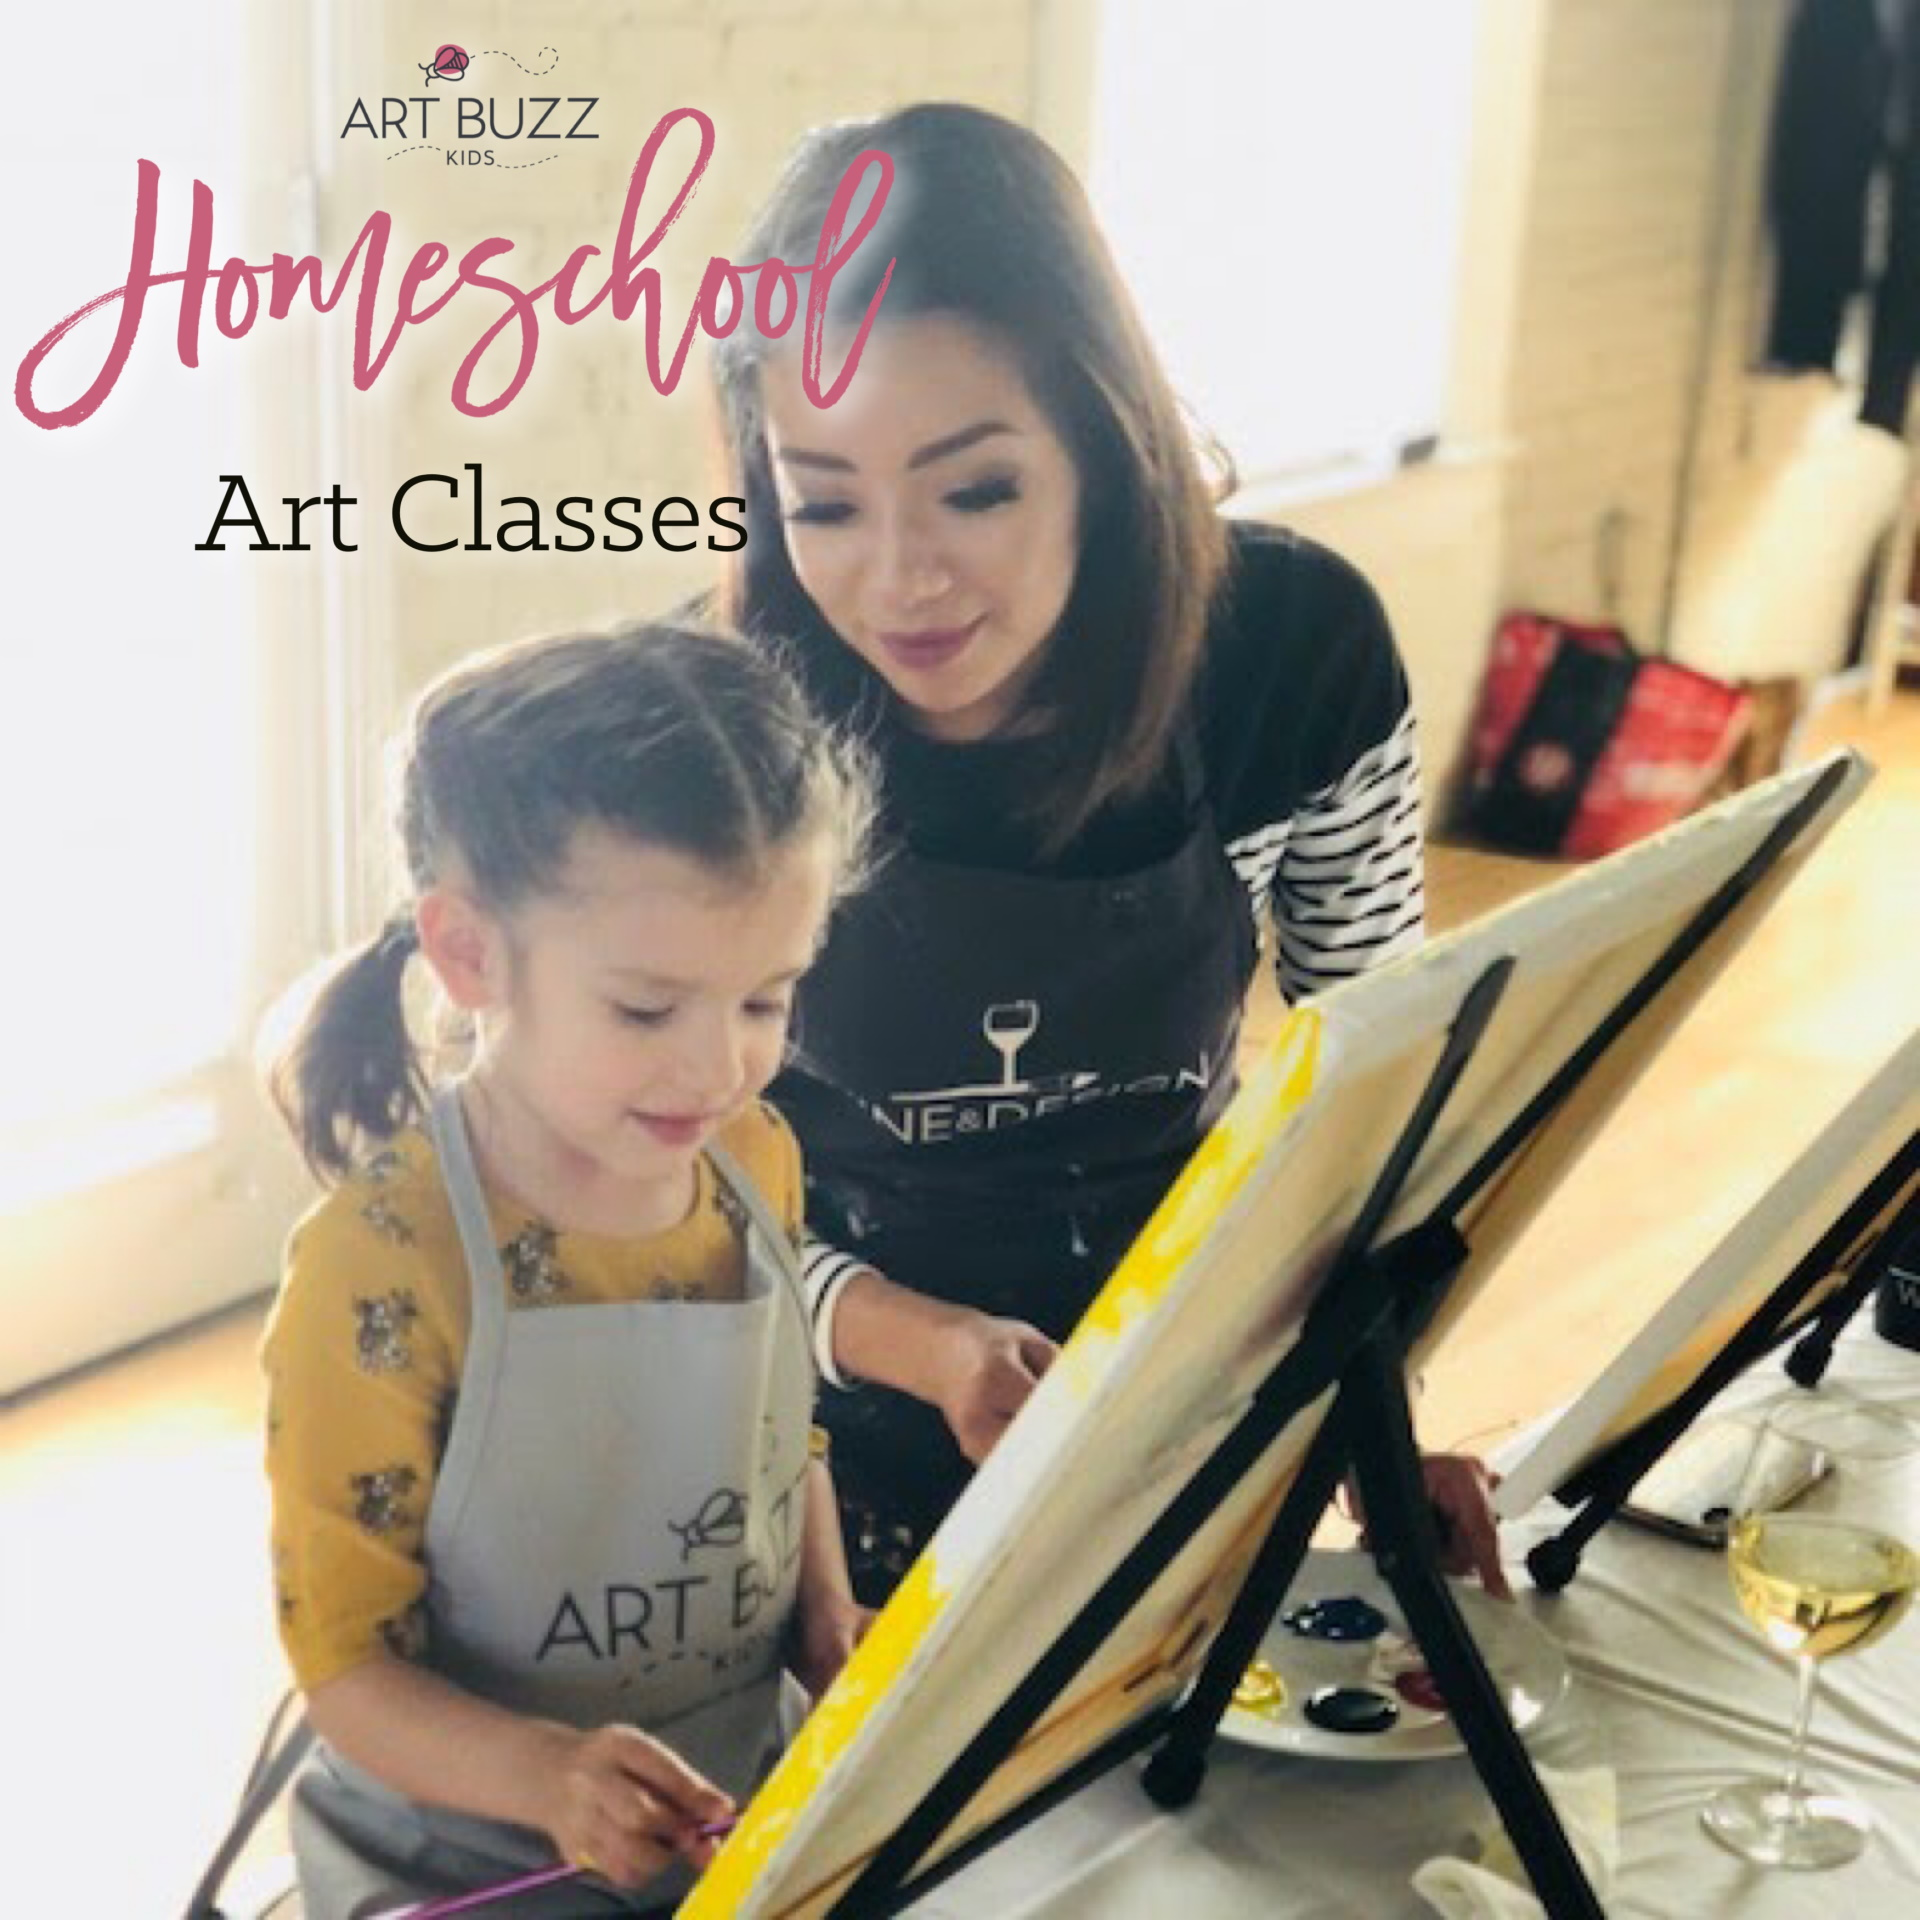 Home School Art Session